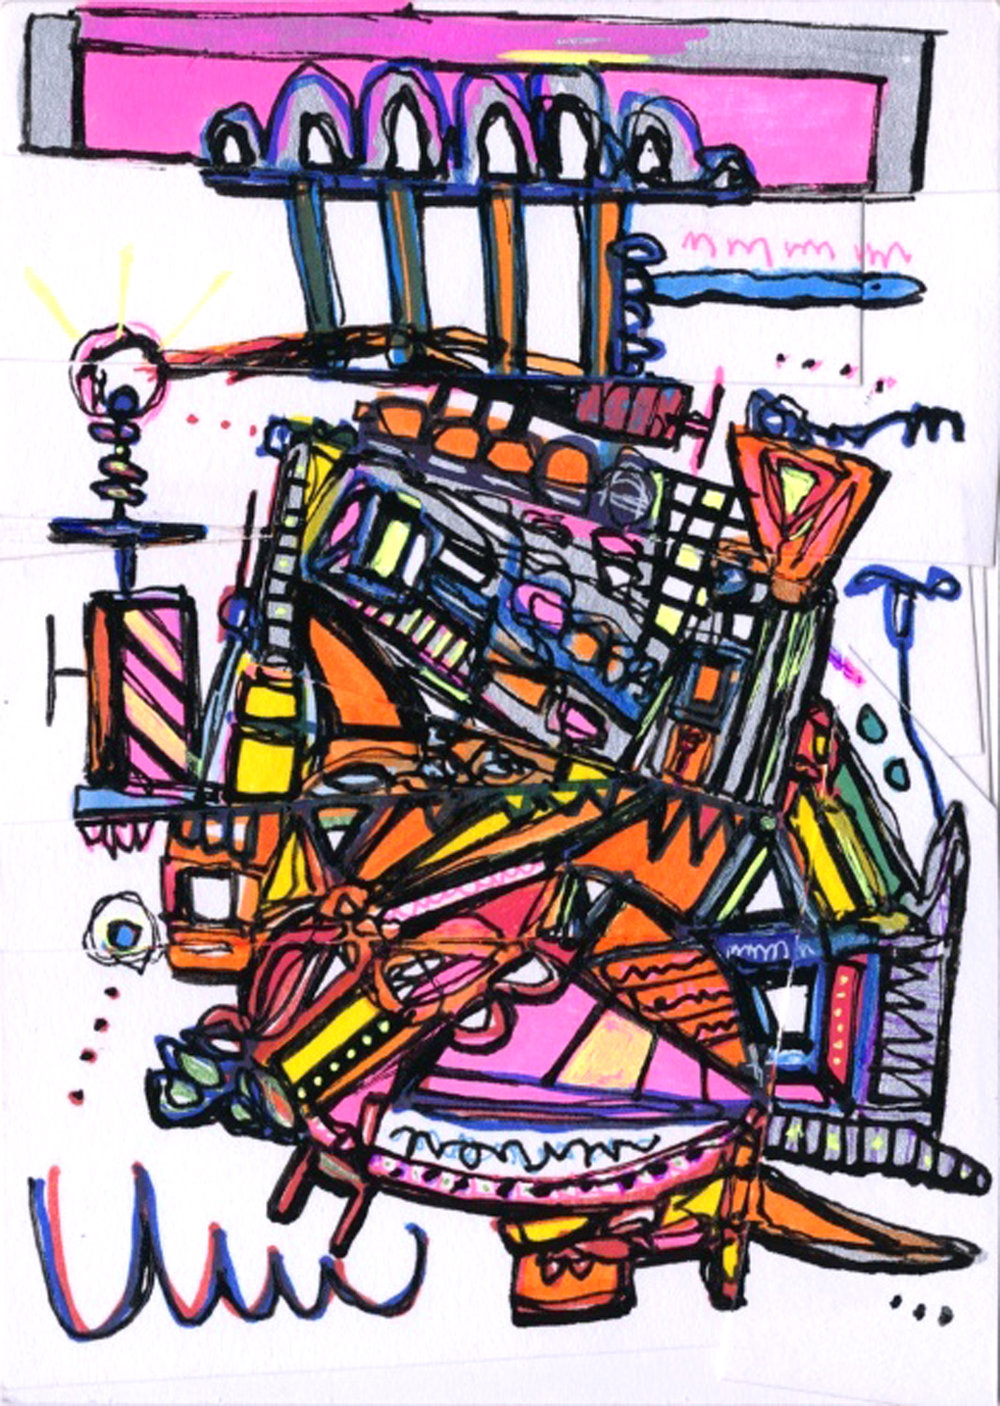 Joseph Meloy_Airship_5 in x 7 in_mixed media on paper_2013_300.jpg